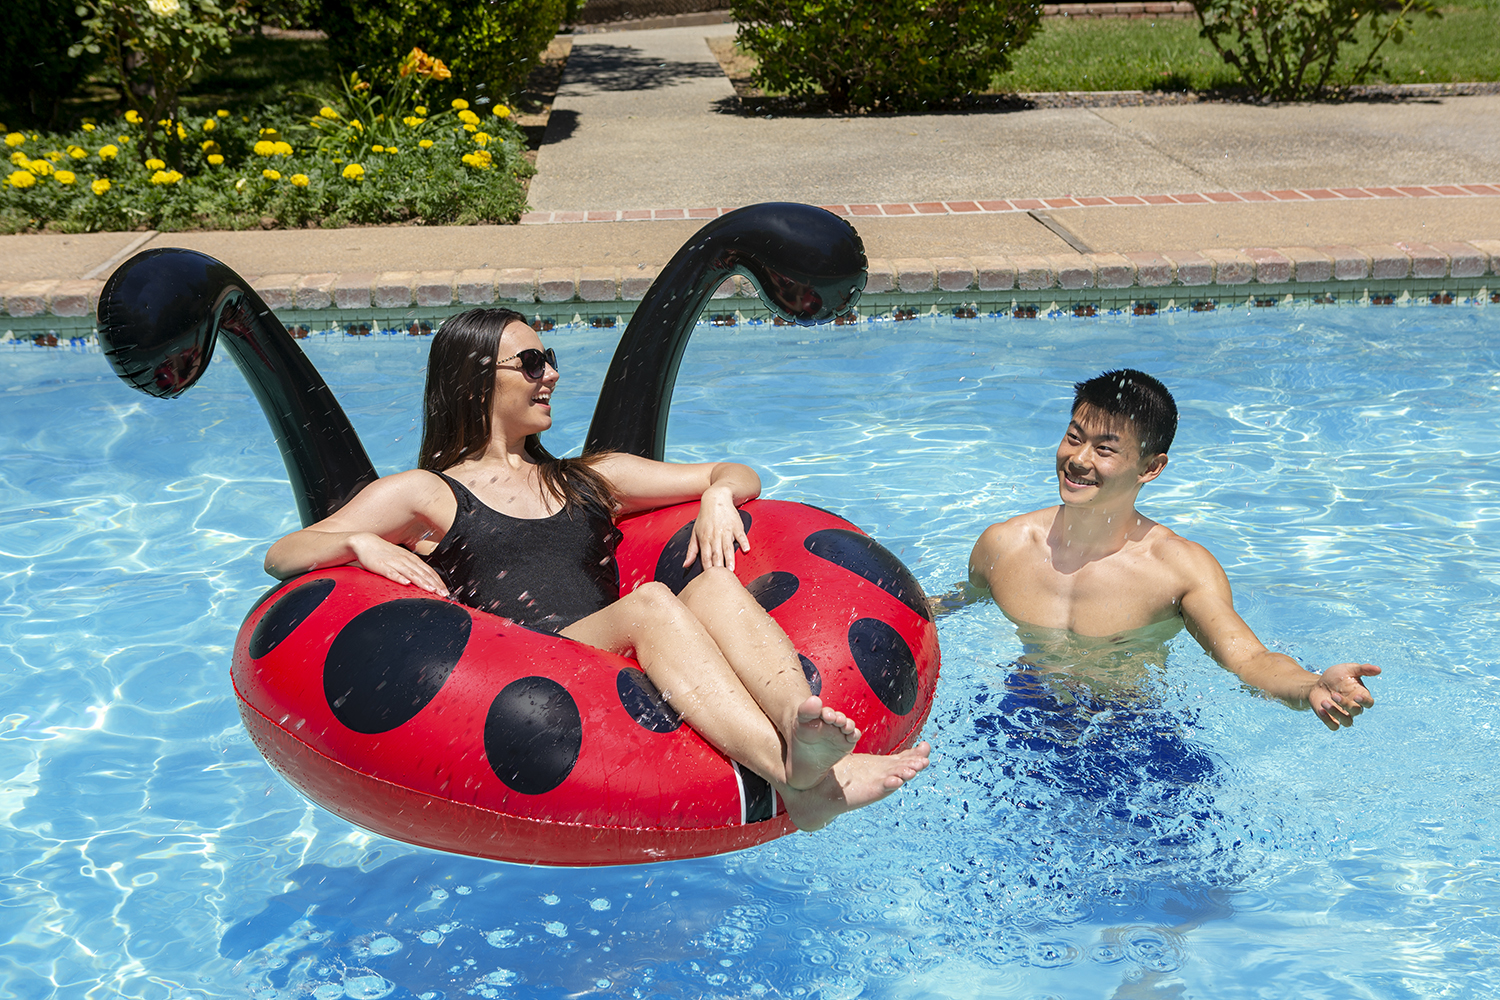 Poolmaster 48-Inch Swimming Pool Float Party Tube, Lady Bug by Poolmaster